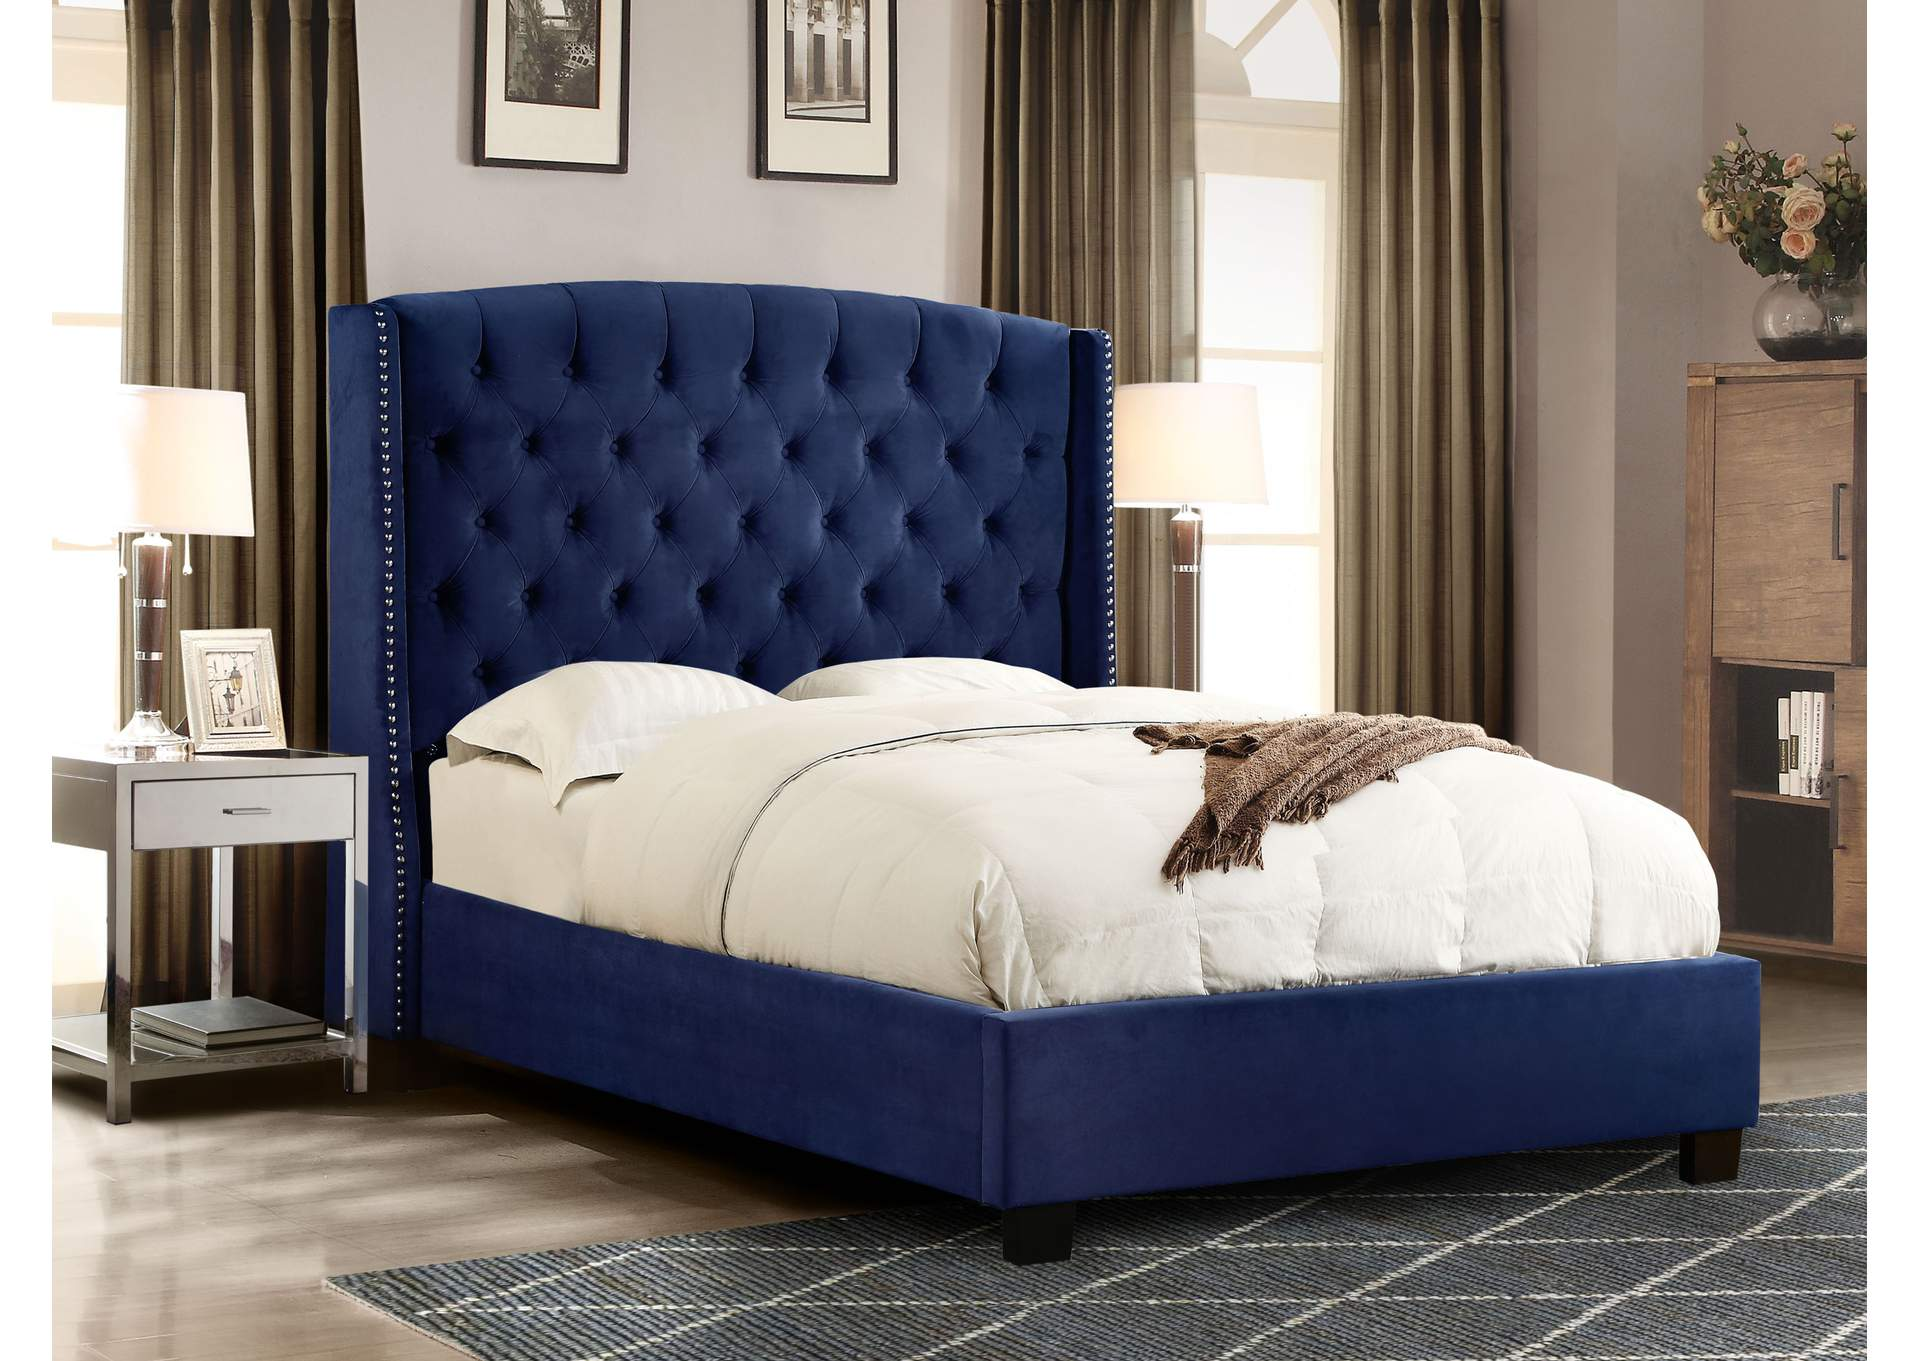 Majestic Royal Navy Velvet Eastern King Tufted Bed w/Nail Head Wing Accents,Diamond Sofa